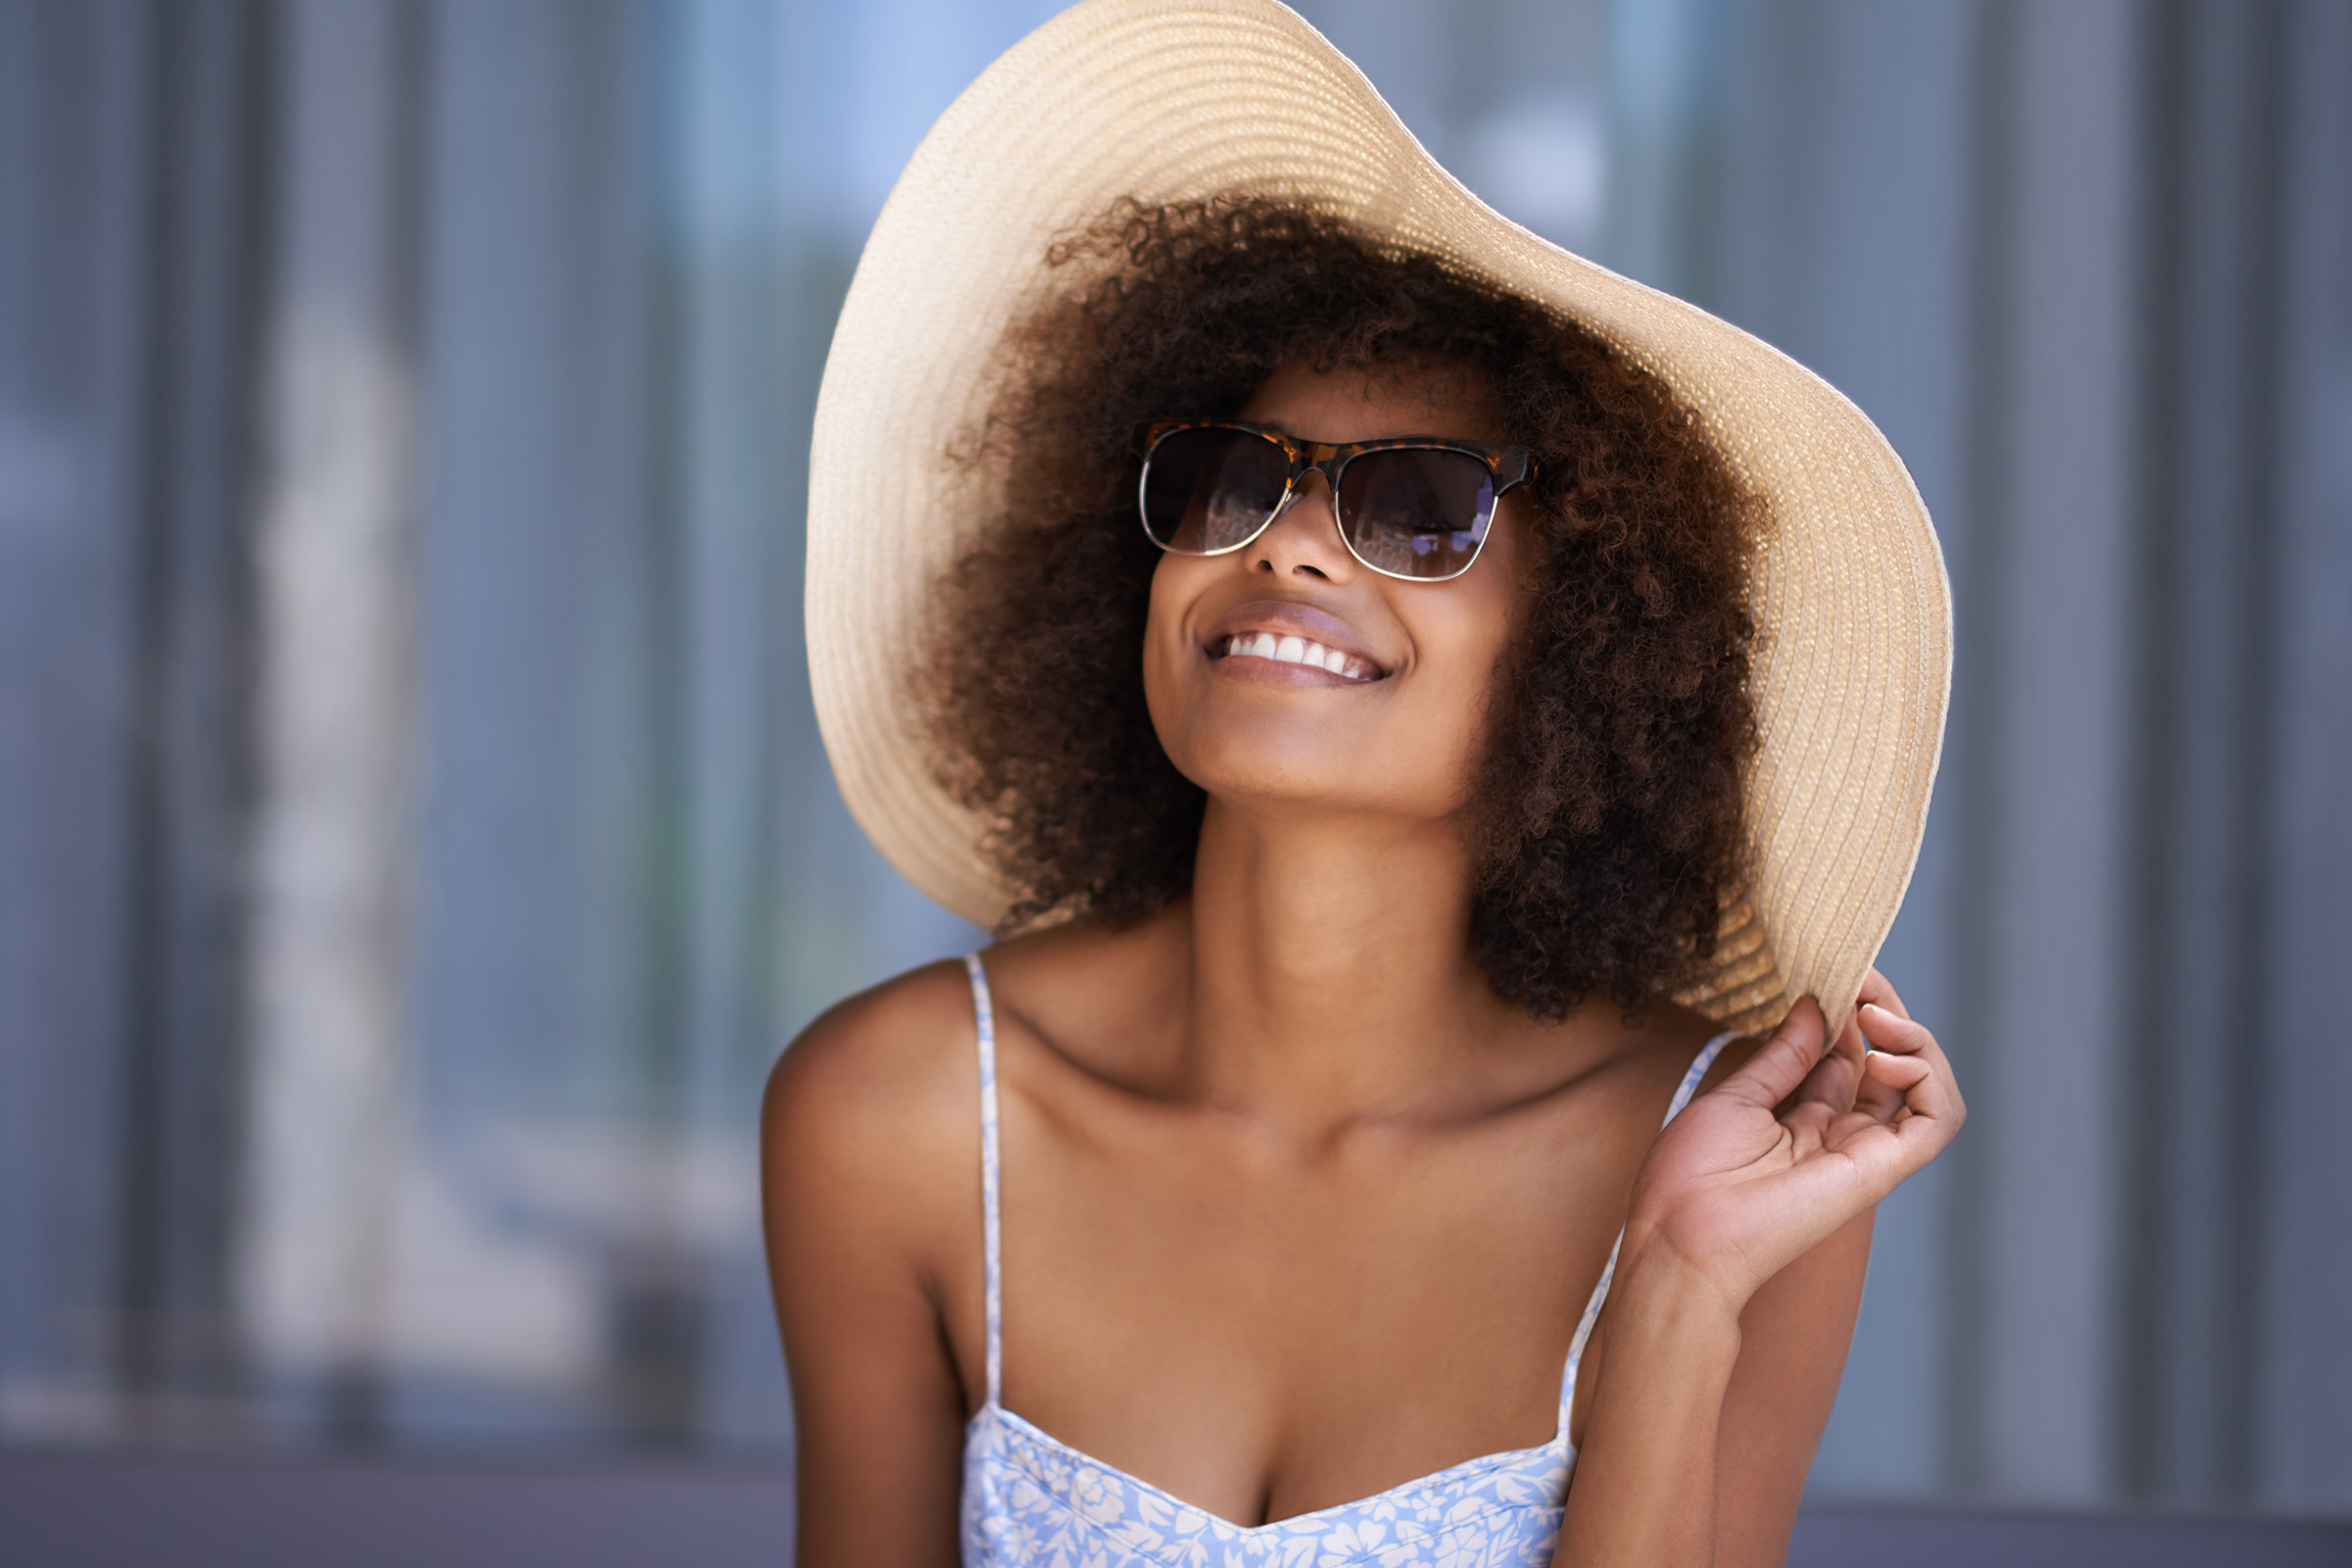 a person wearing a hat and sunglasses